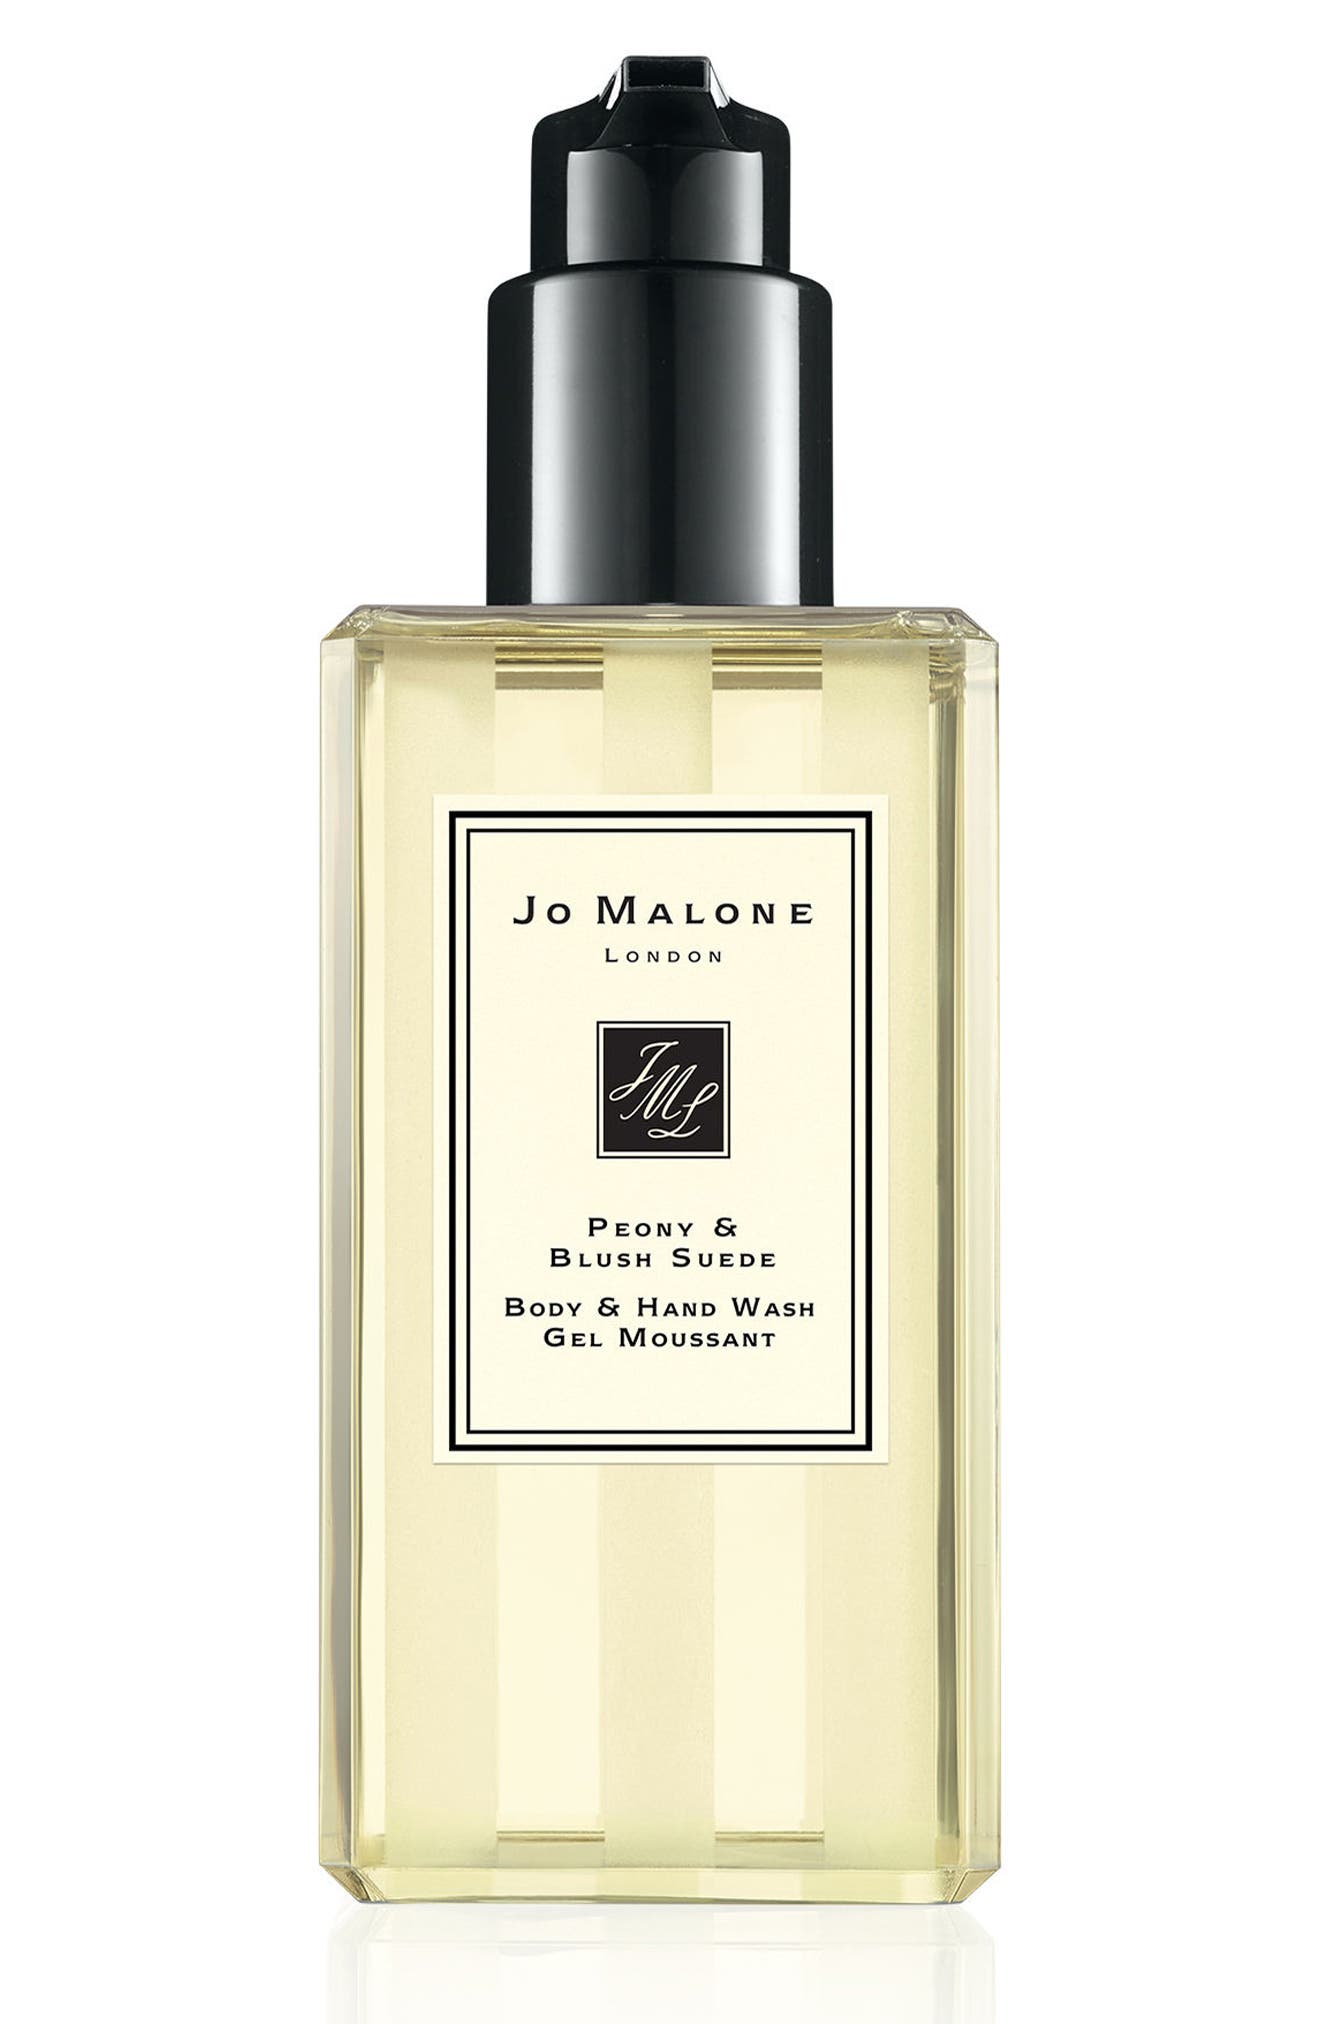 Jo Malone London™ Peony & Blush Suede Body & Hand Wash